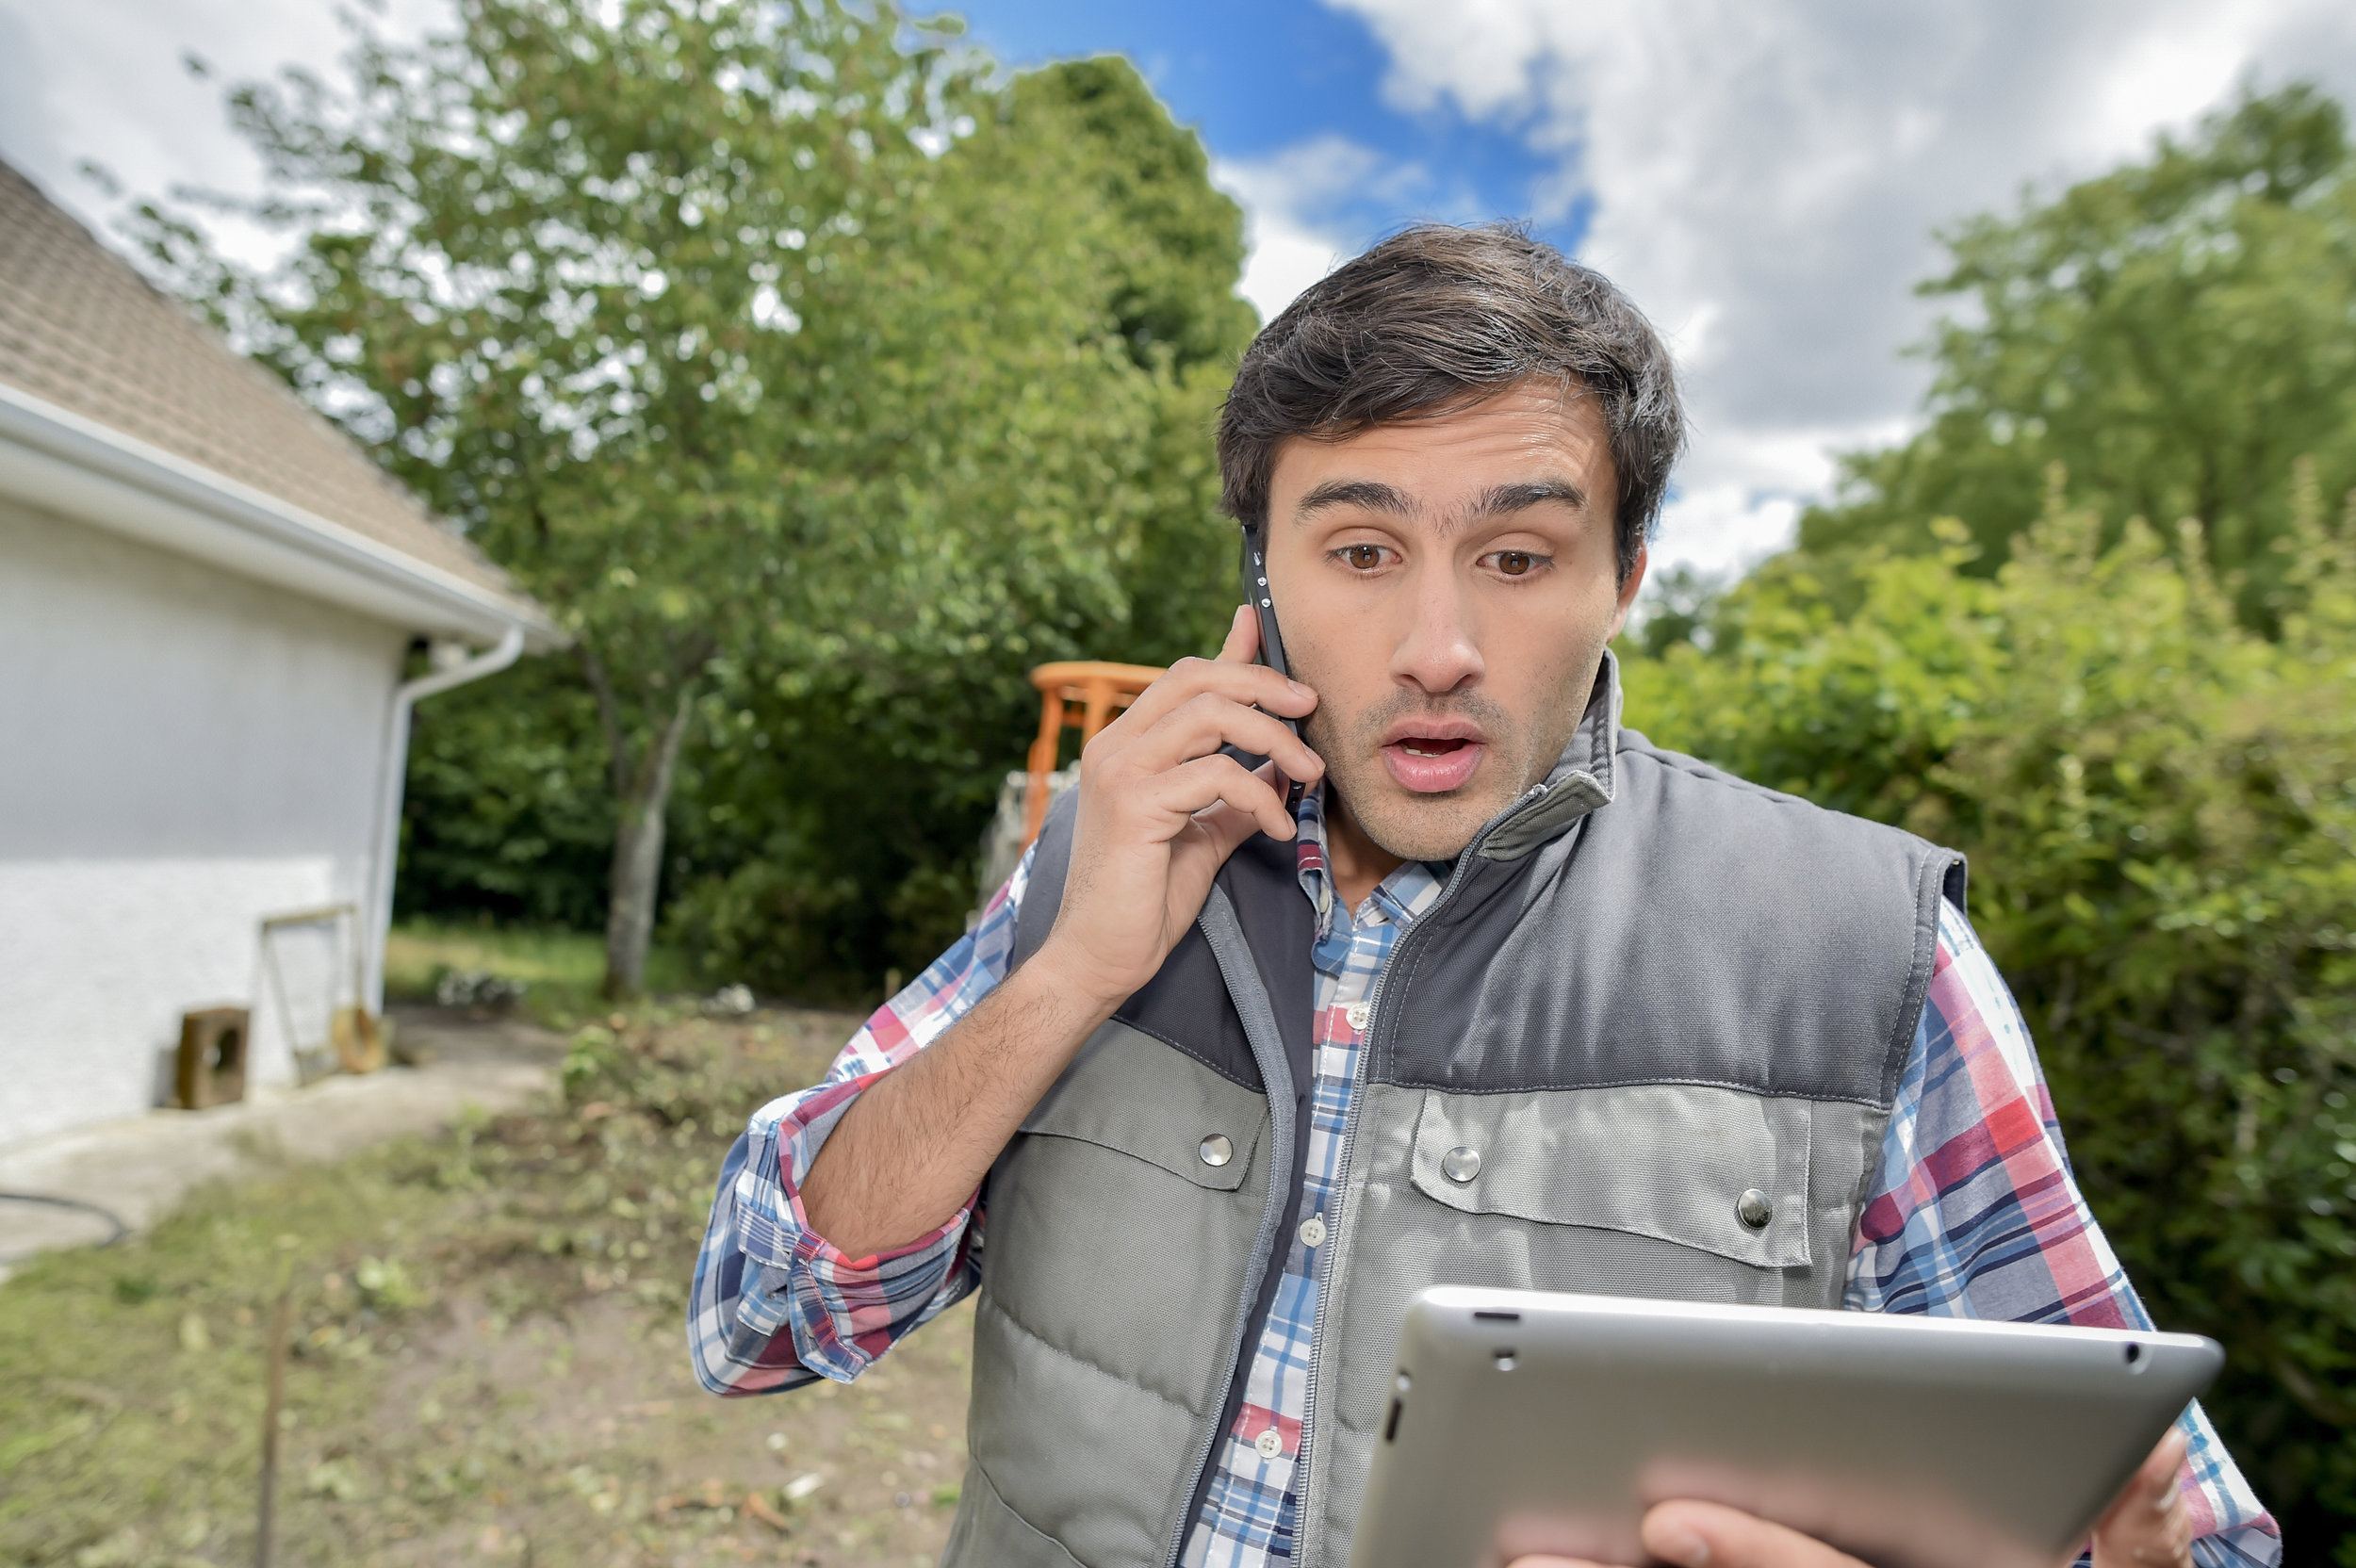 Man talking on mobile phone while looking at a tablet computer standing outside among landscaping.